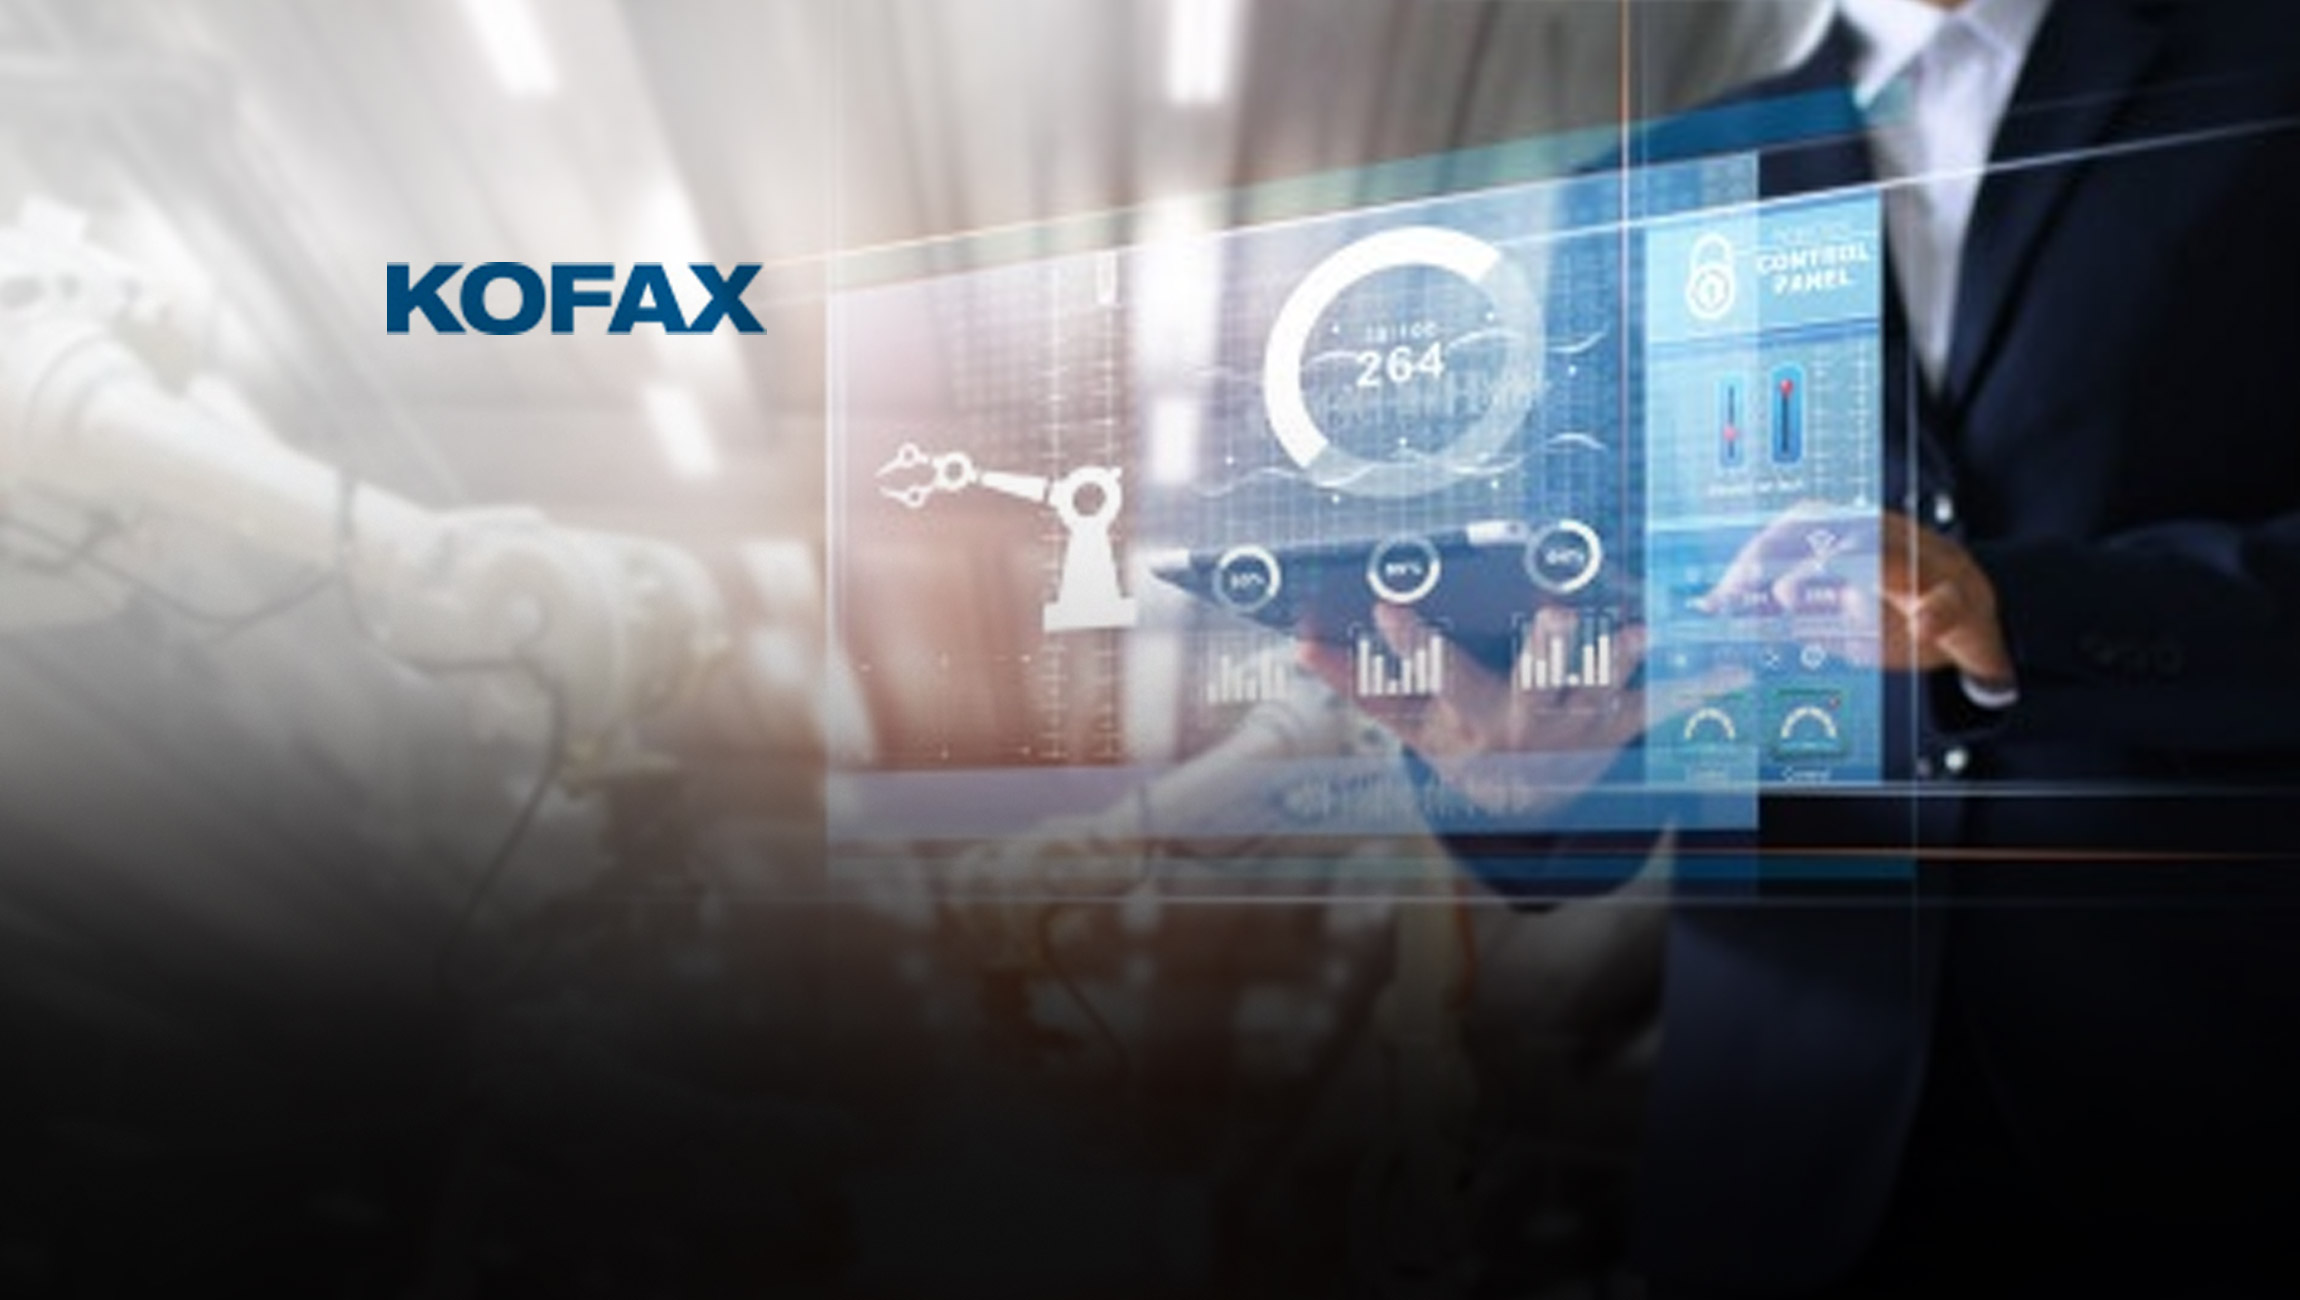 Kofax Recognized in 2020 Gartner Magic Quadrant for Robotic Process Automation Report